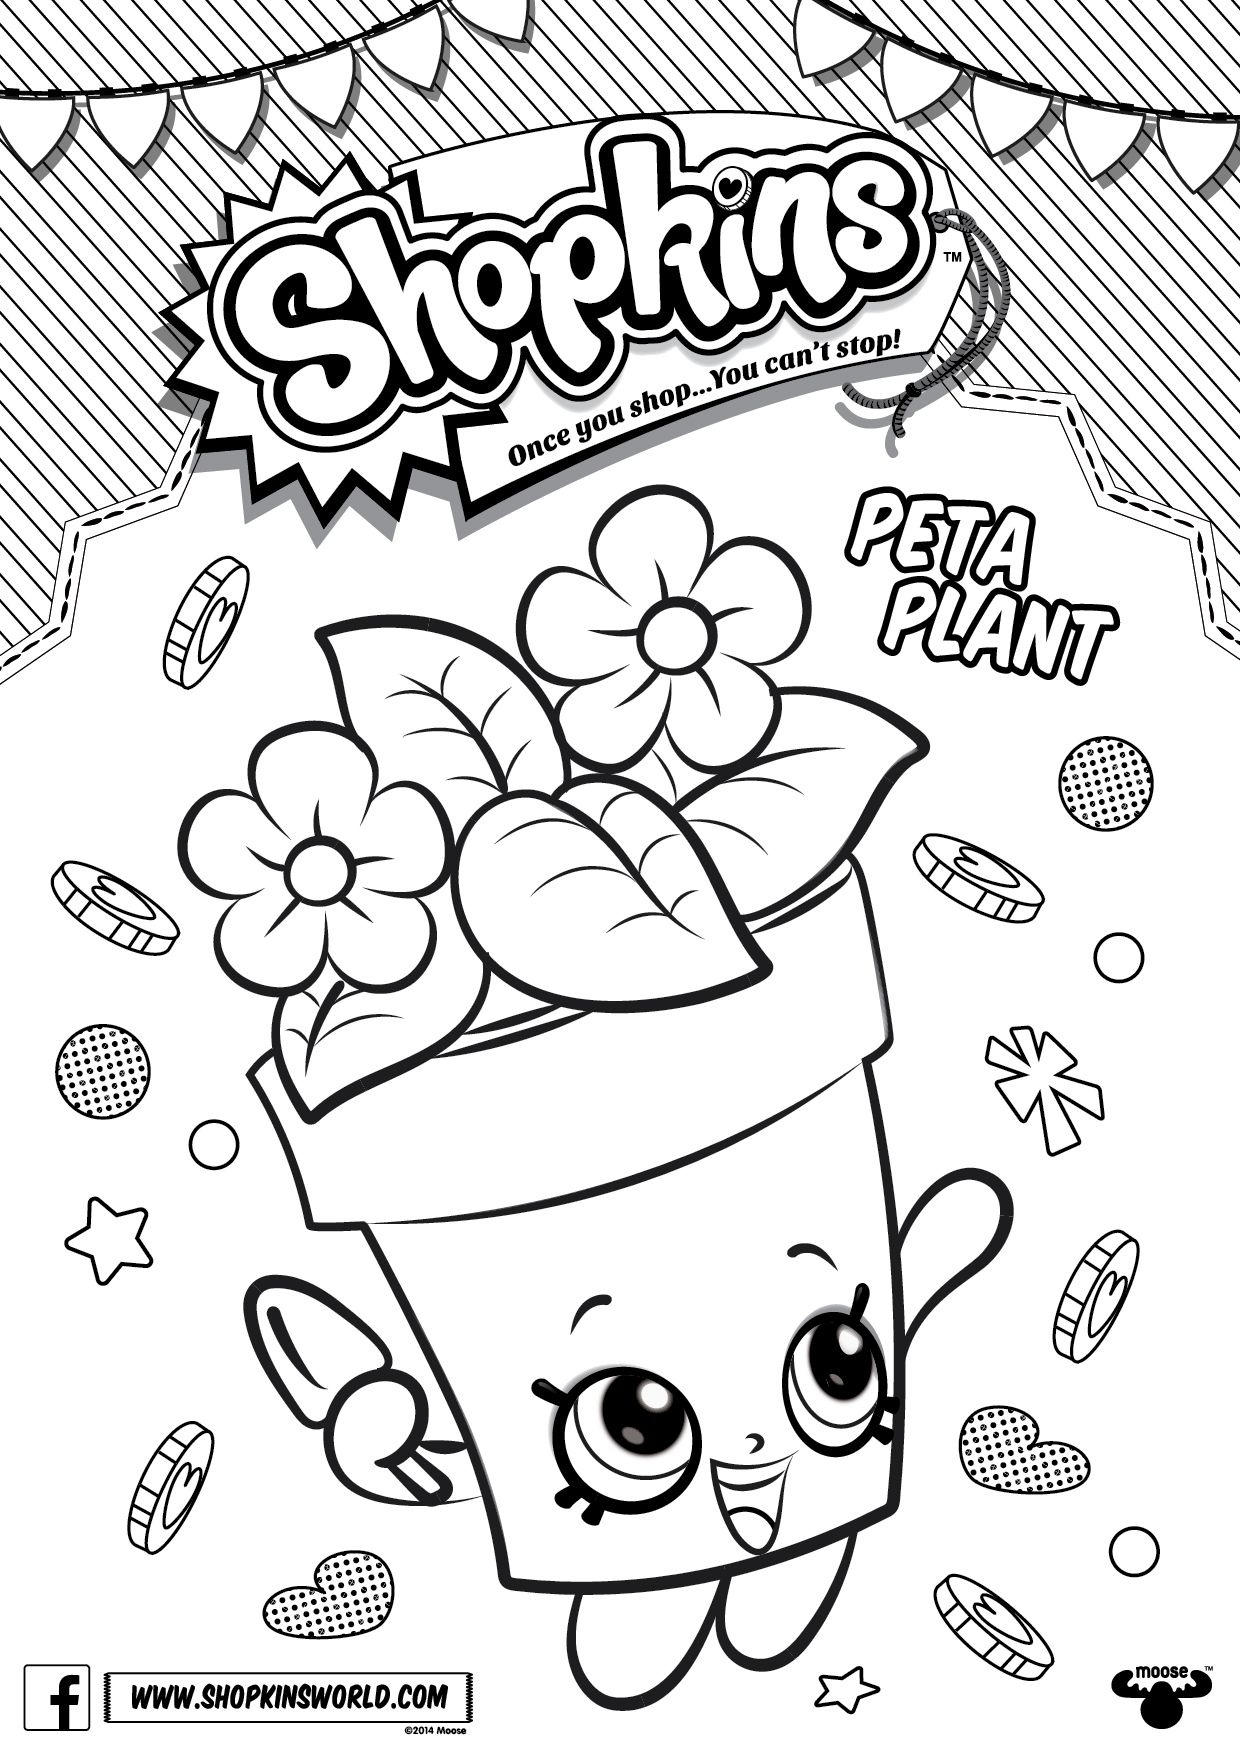 Shopkins colour in peta plant find this pin and more on coloring sheets